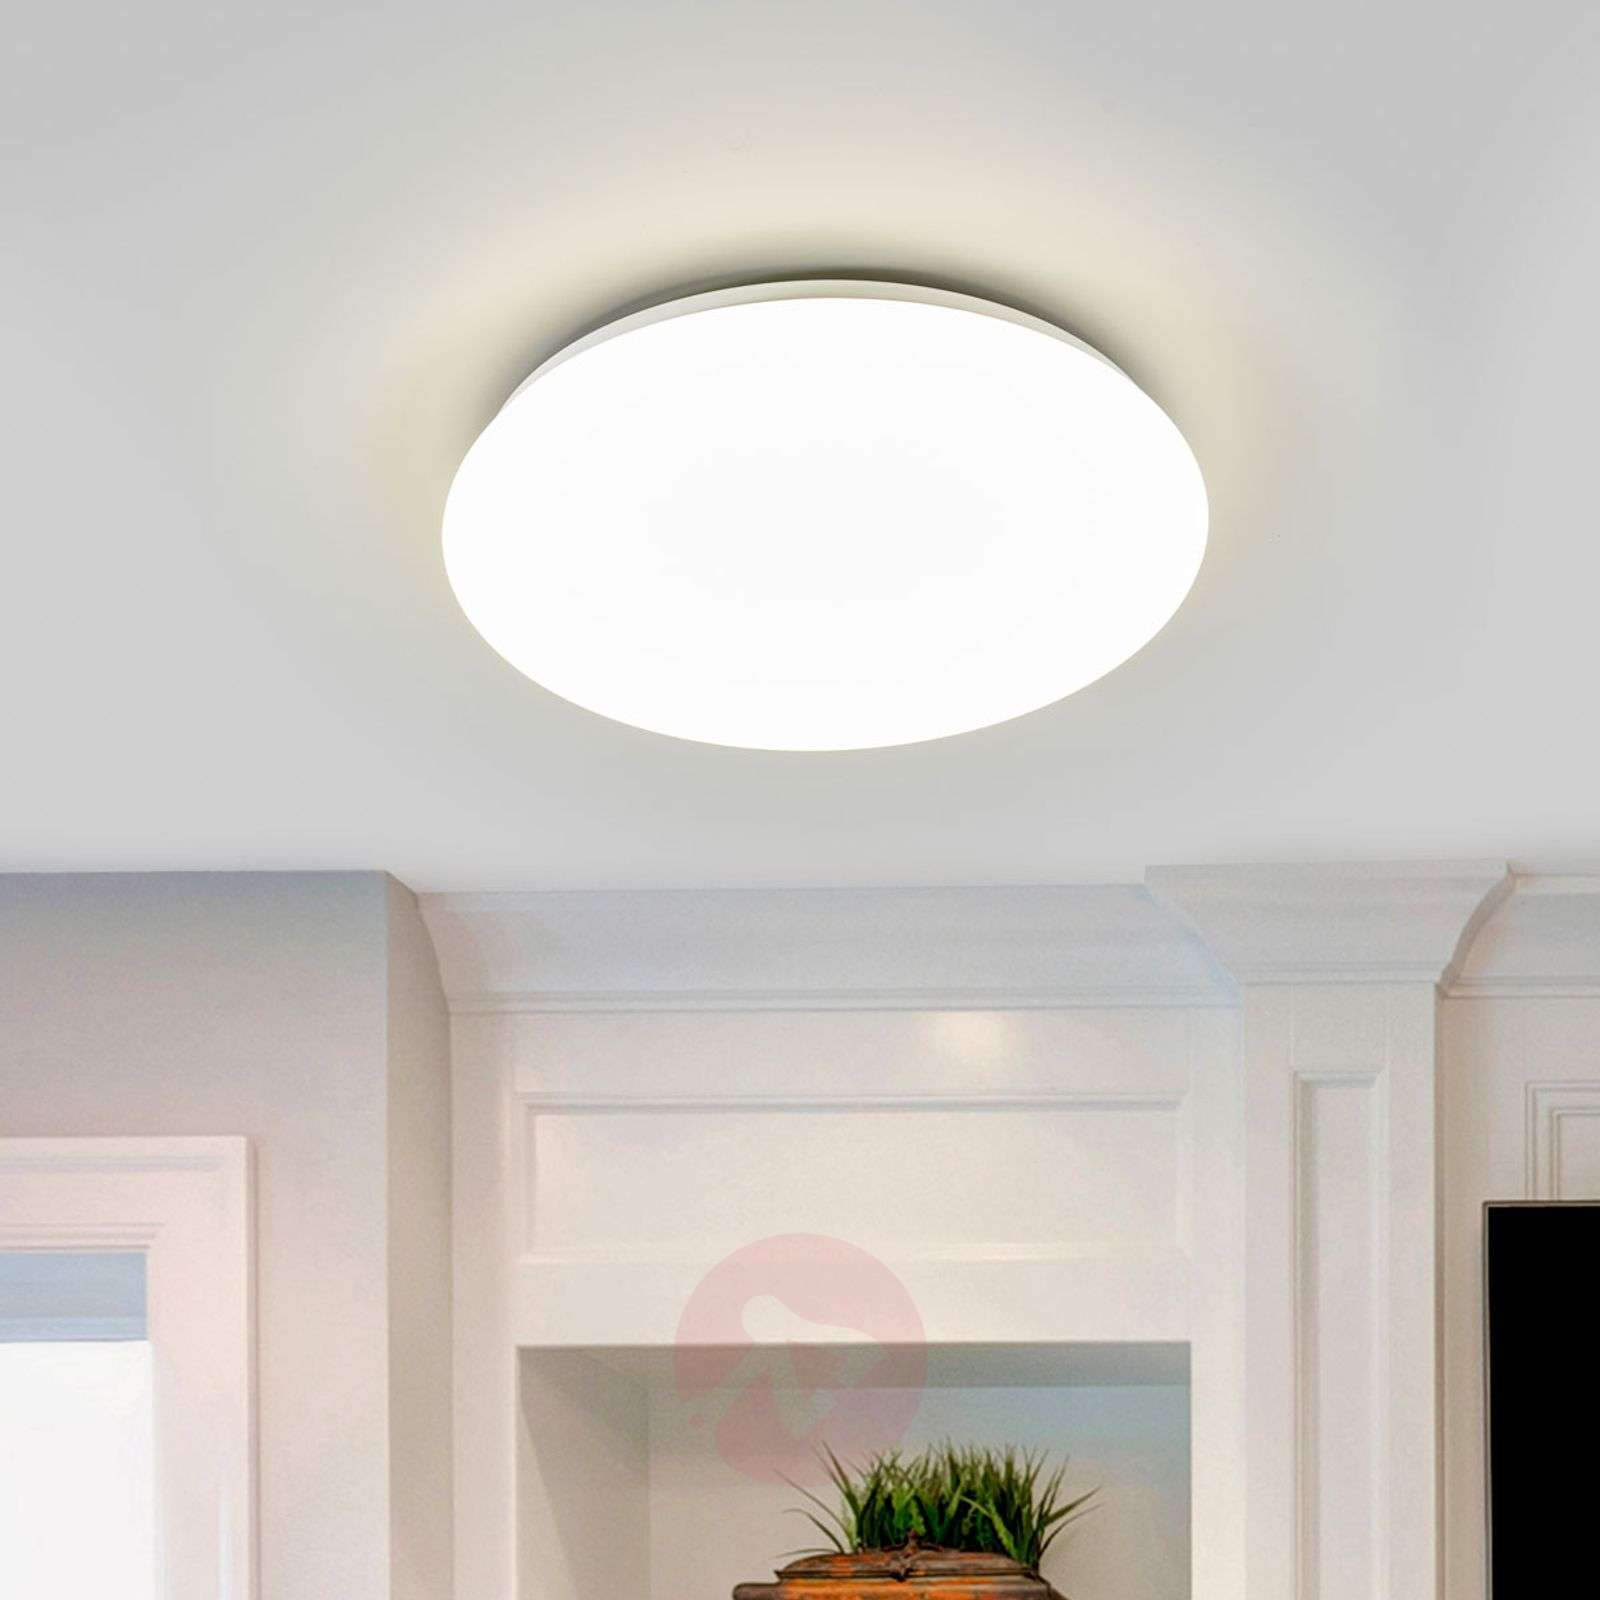 Witte LED-plafondlamp Suede-7531490-01